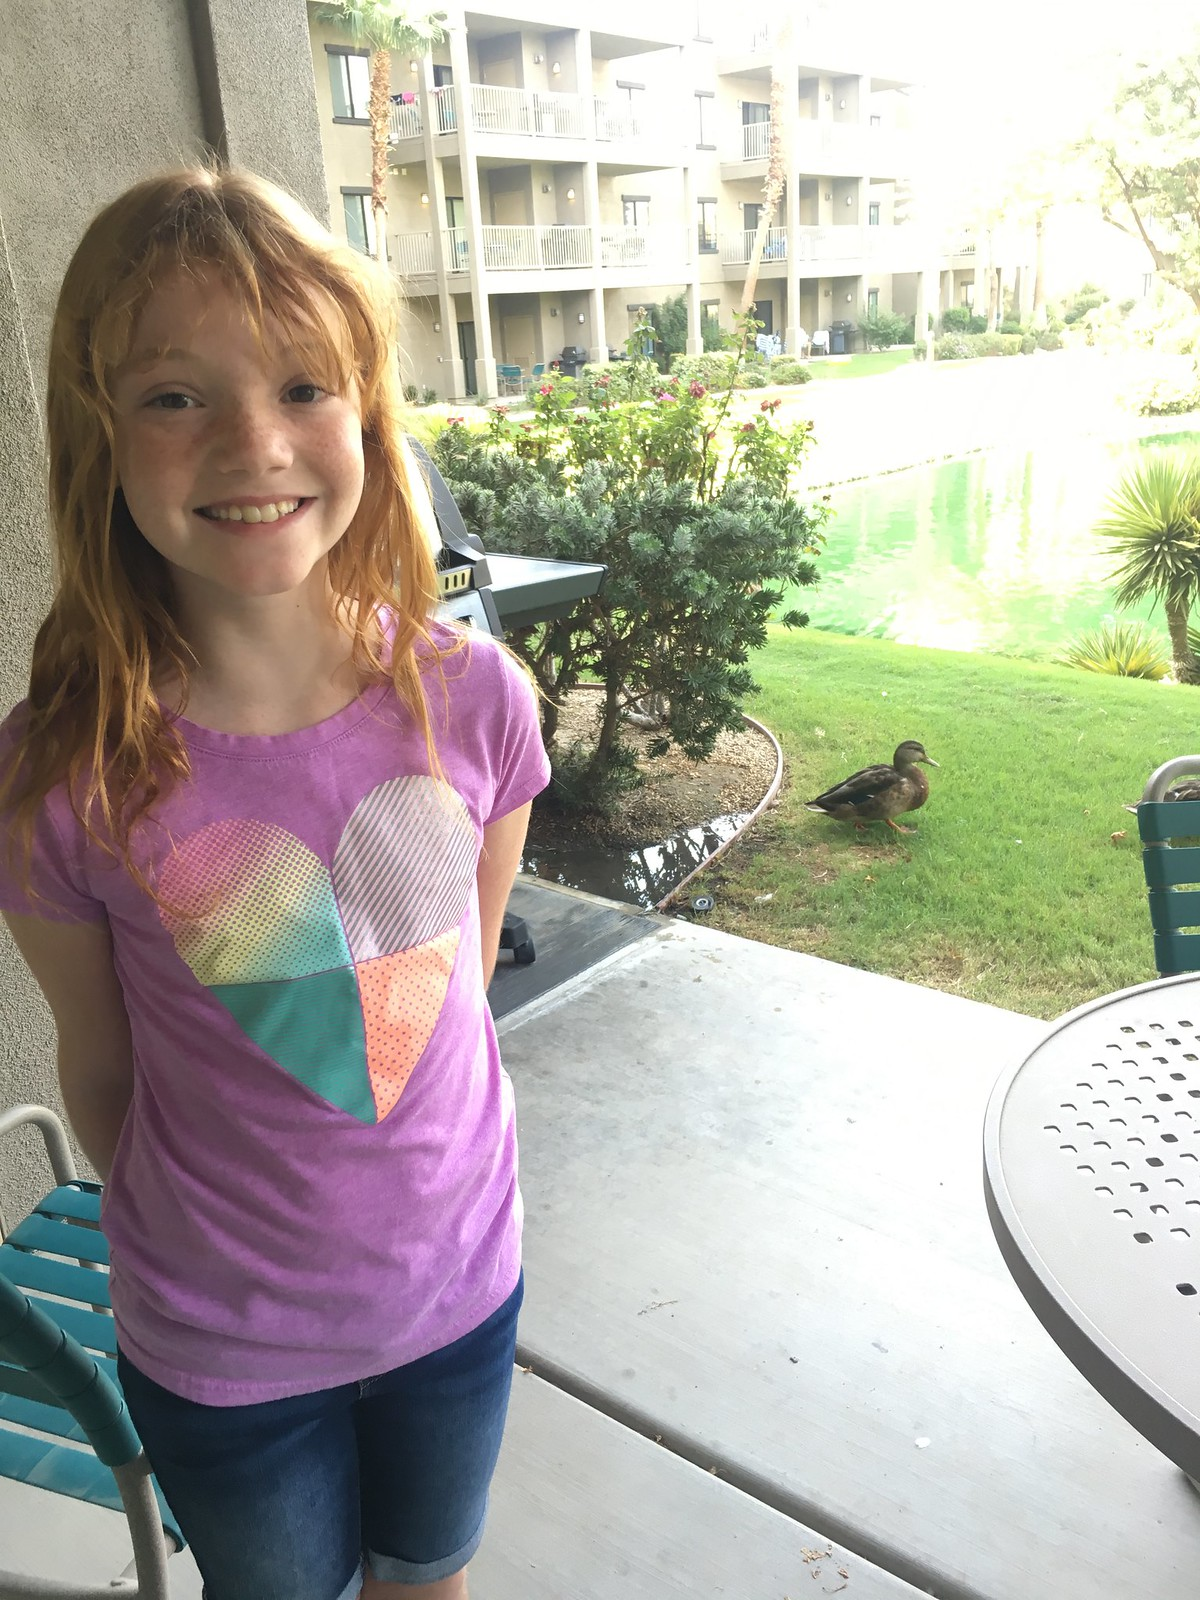 A girl and ducks